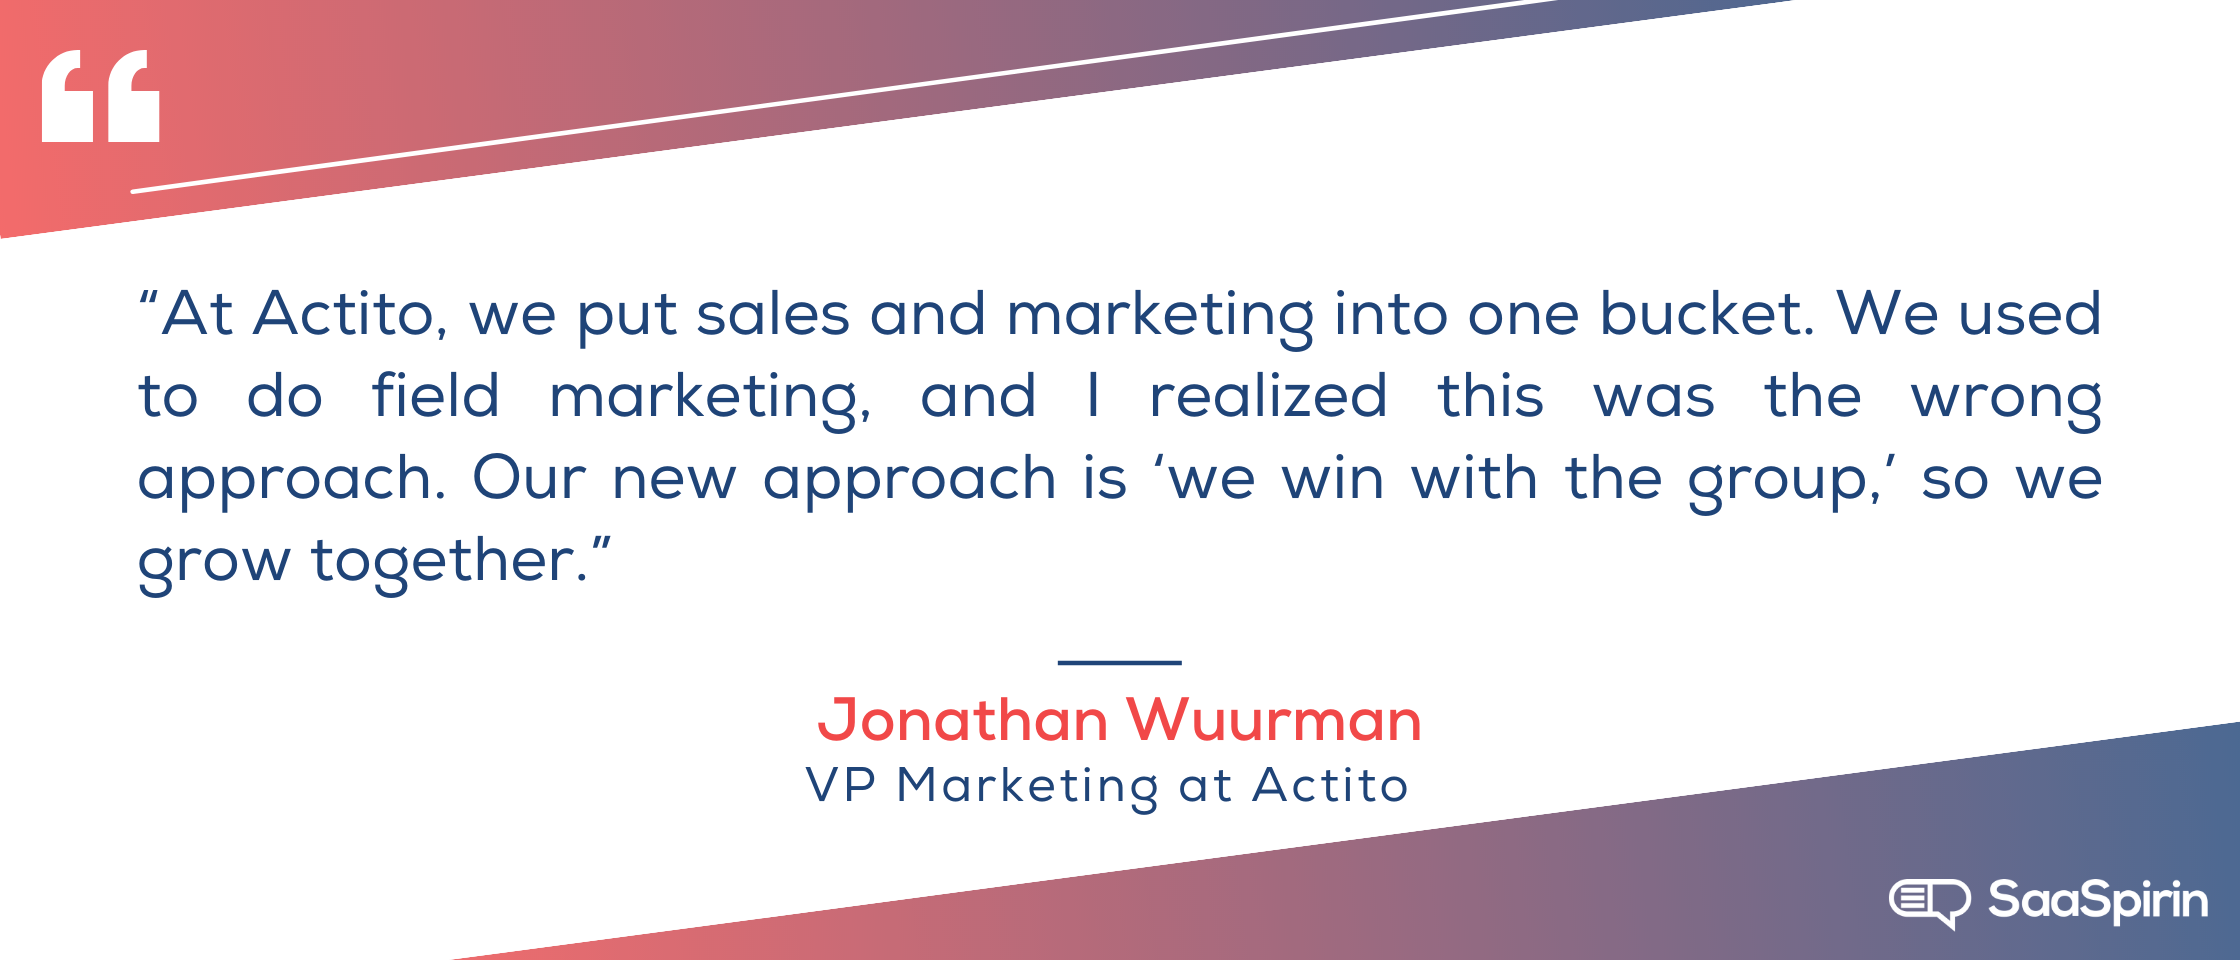 At-Actito-we-put-sales-and-marketing-into-one-bucket-We-used-to-do-field-marketing-and-I-realized-this-was-the-wrong-approach-Our-new-approach-is-we-win-with-the-group-so-we-grow-together.png